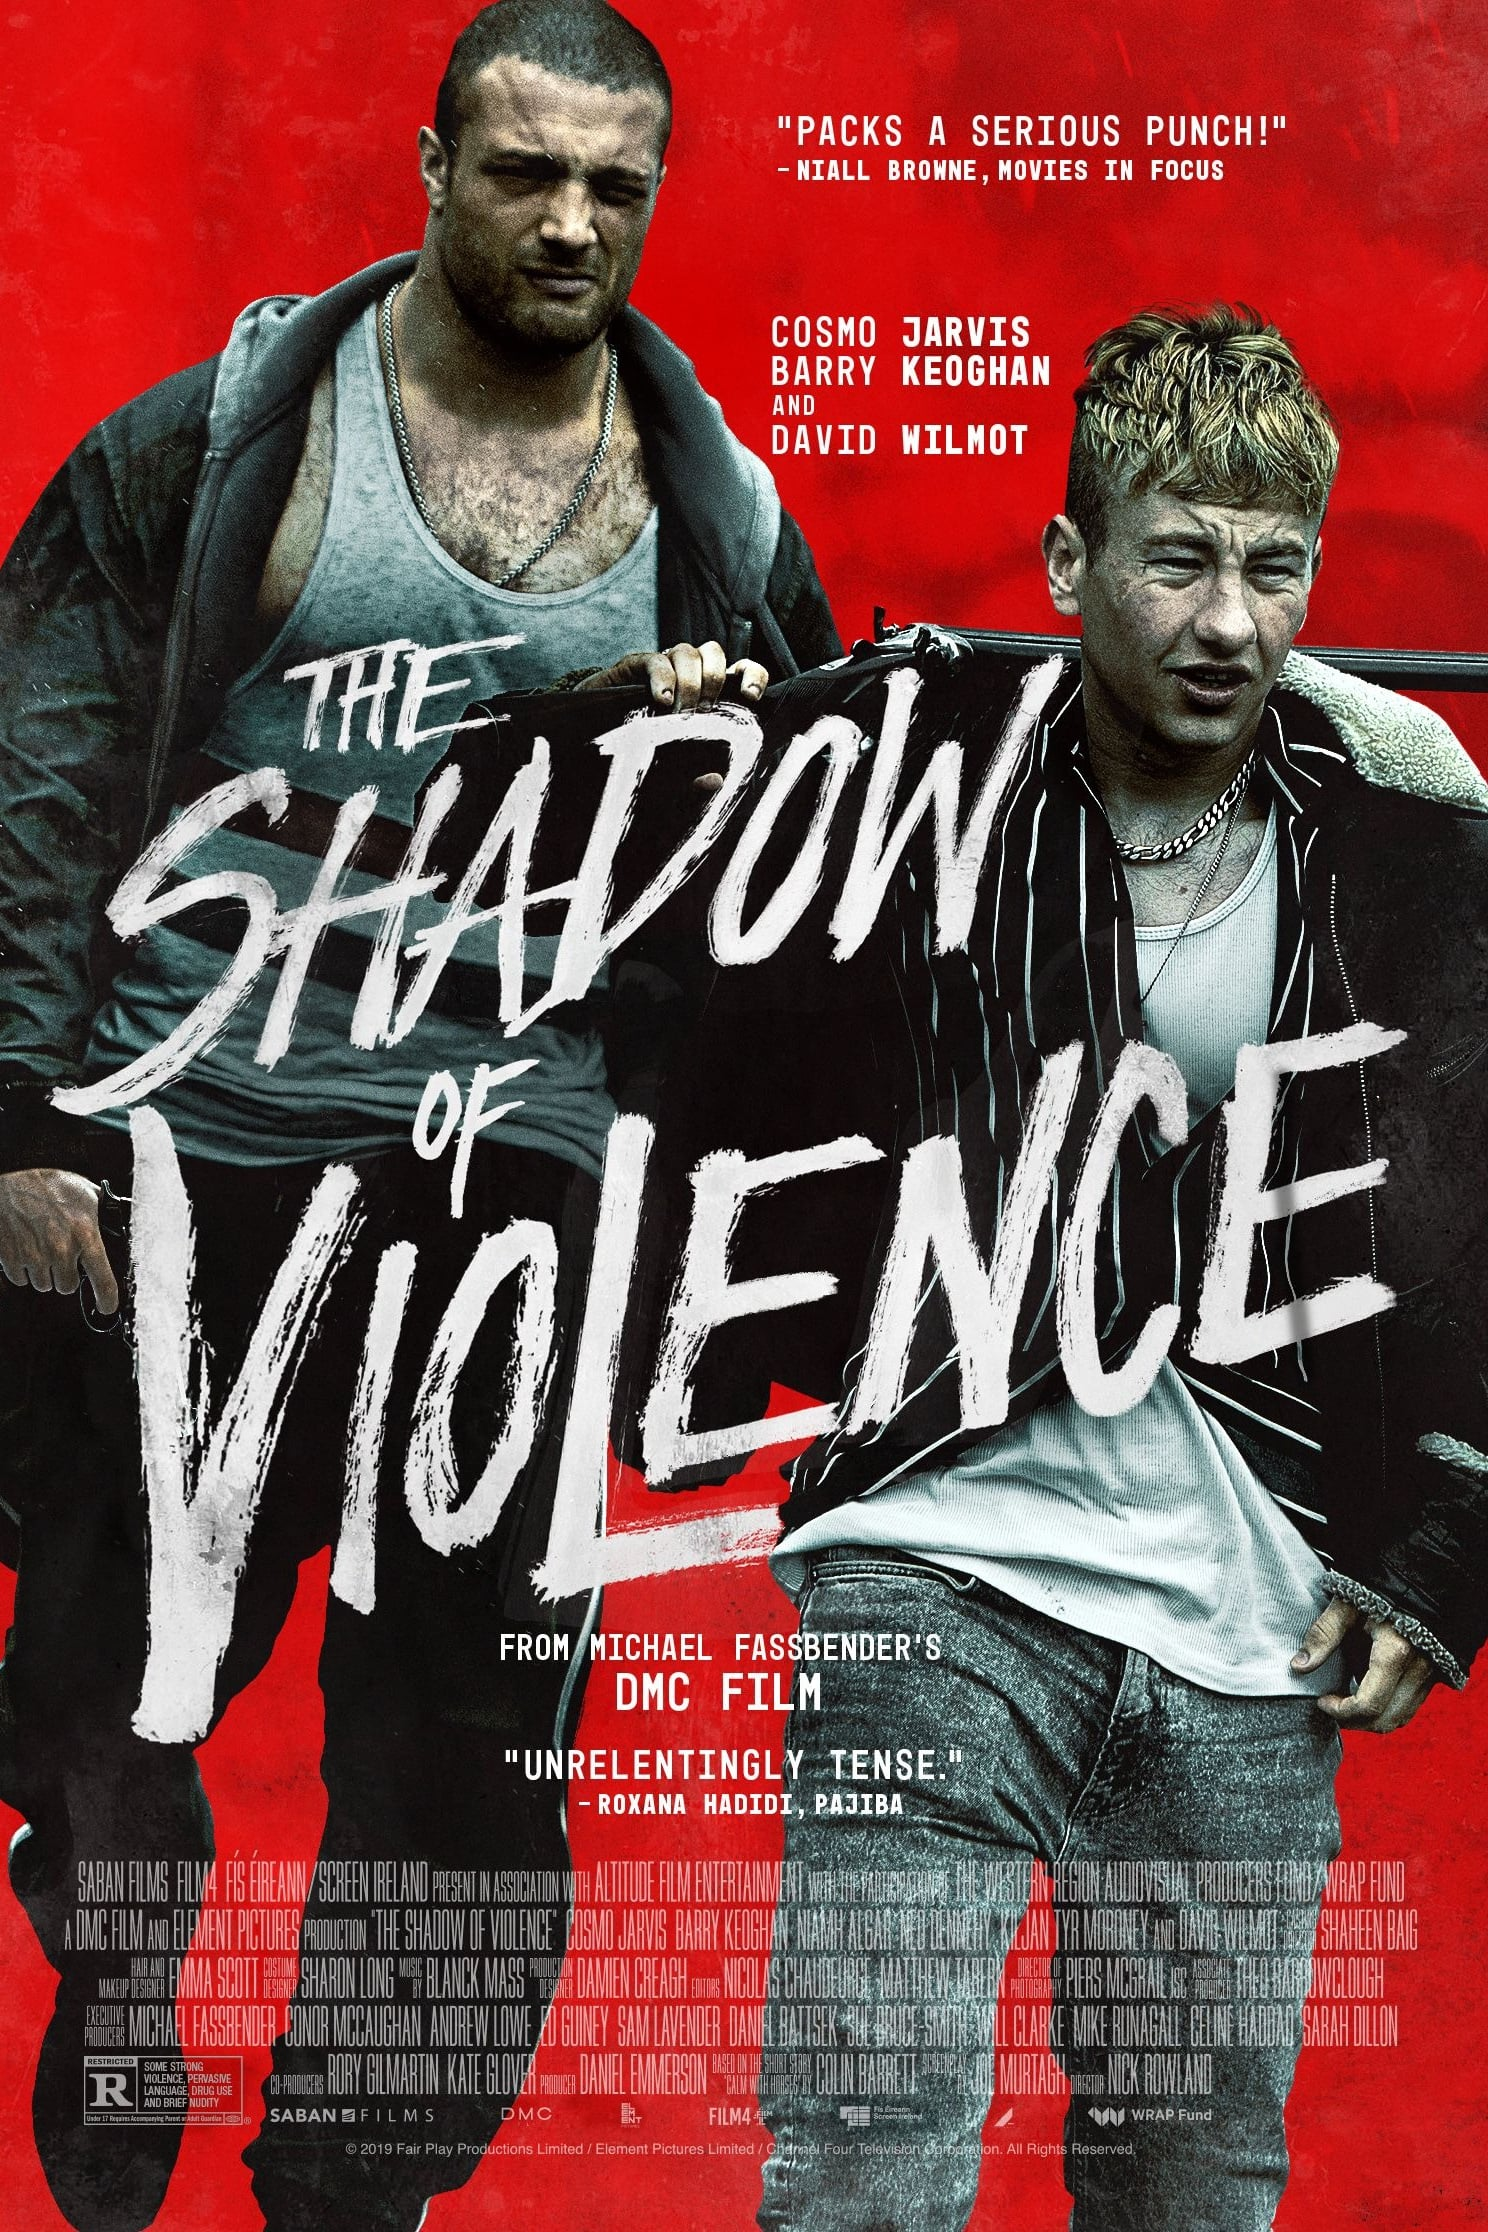 The Shadow of Violence trailer